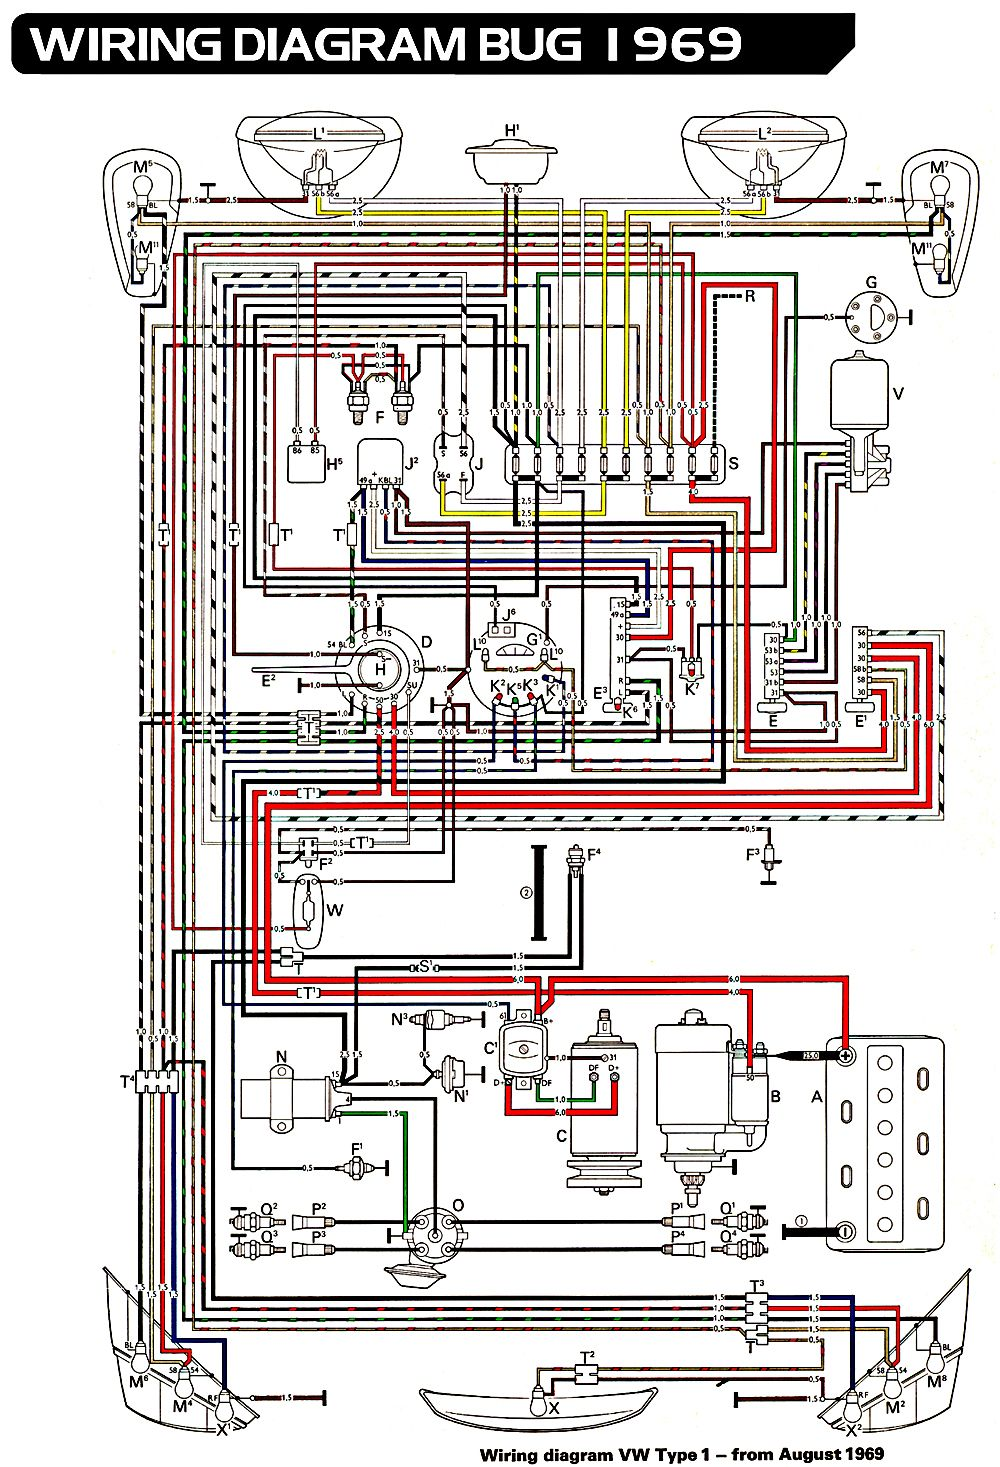 6d75c15875479254f26a32a8499d9044 volkswagen beetle wiring diagram 1966 vw beetle wiring vw golf 3 electrical wiring diagram at webbmarketing.co